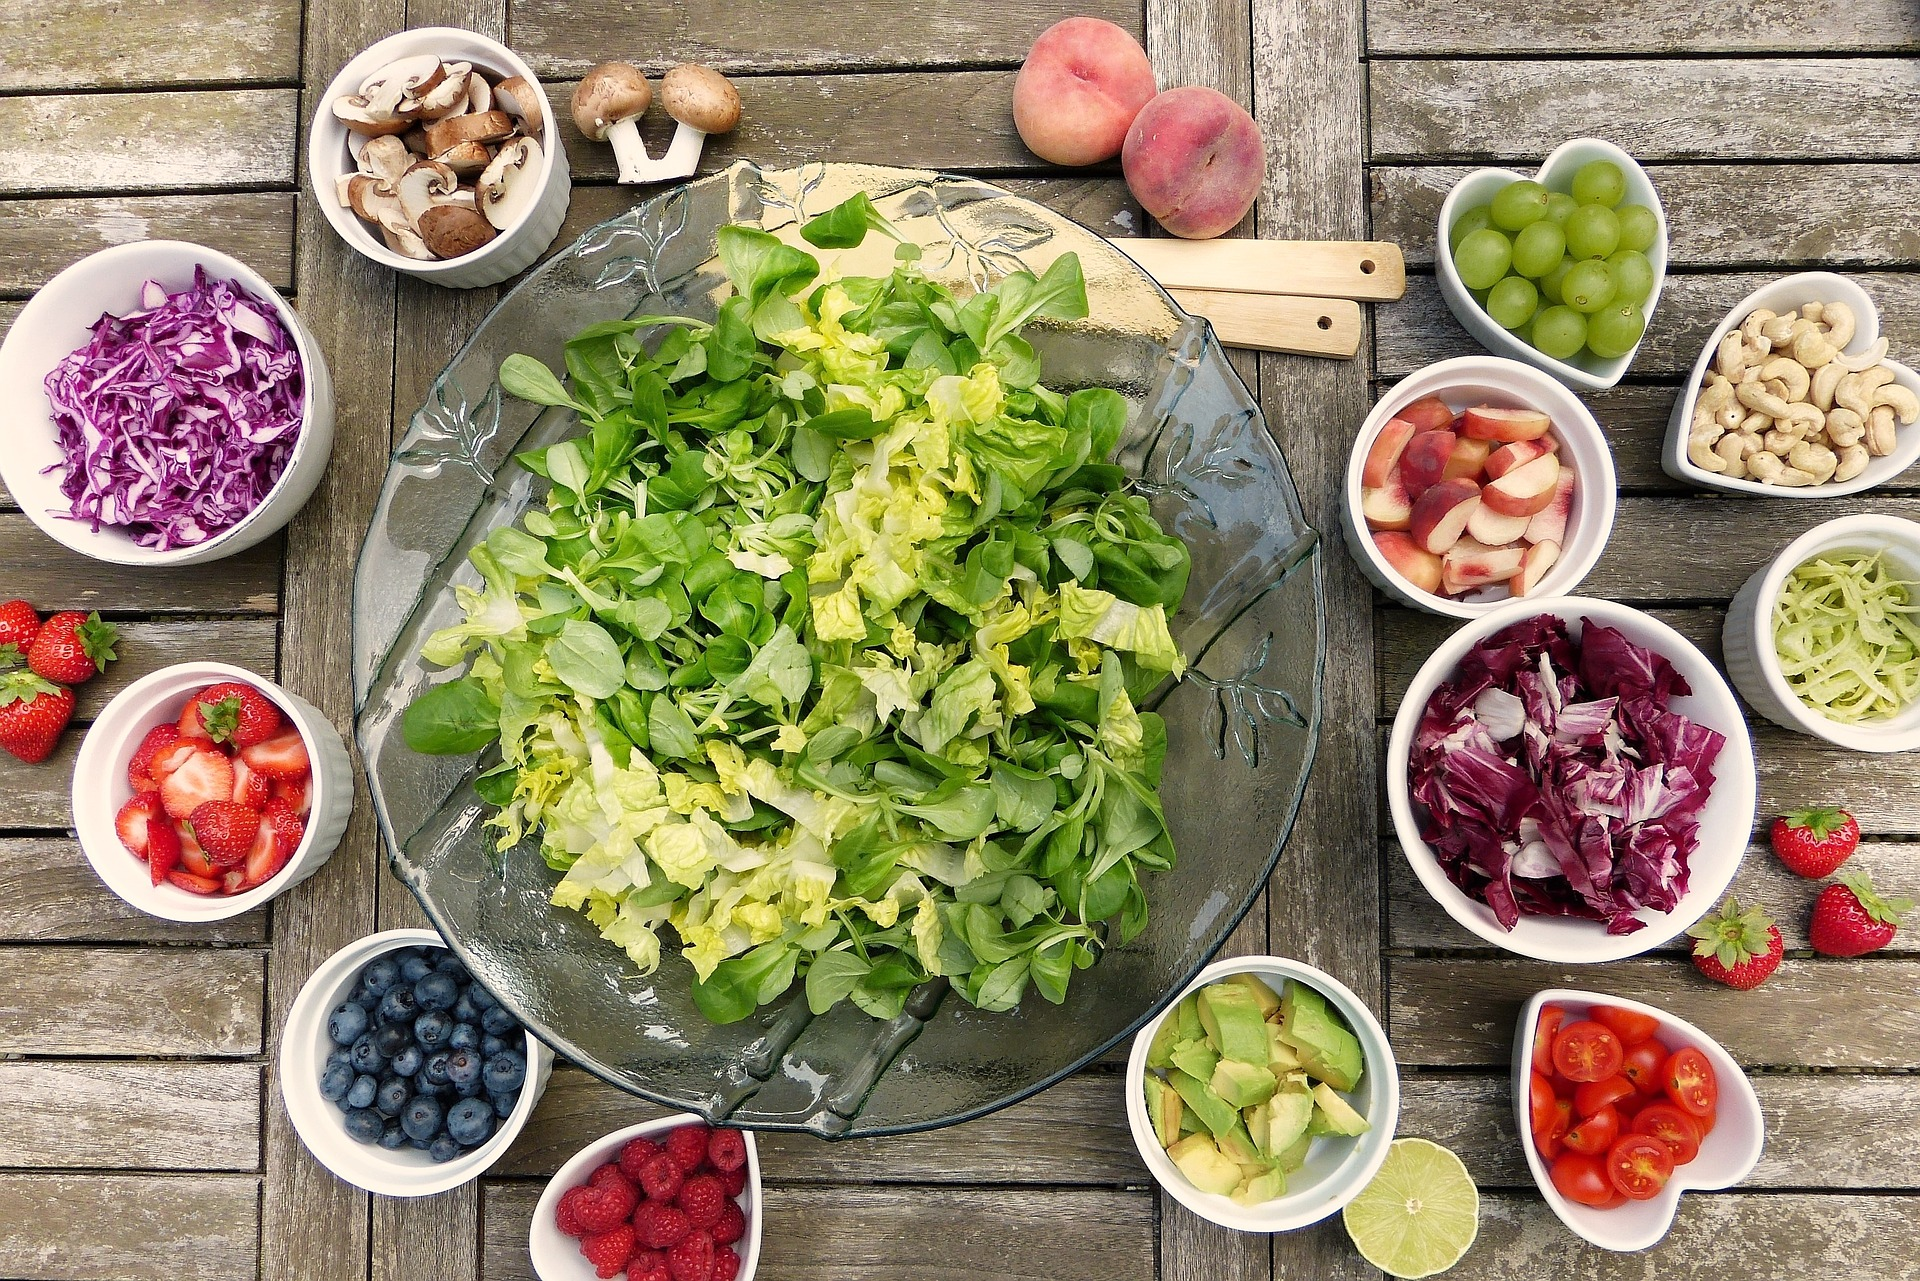 Large bowl of lettuce on picnic table surrounded by salad toppings